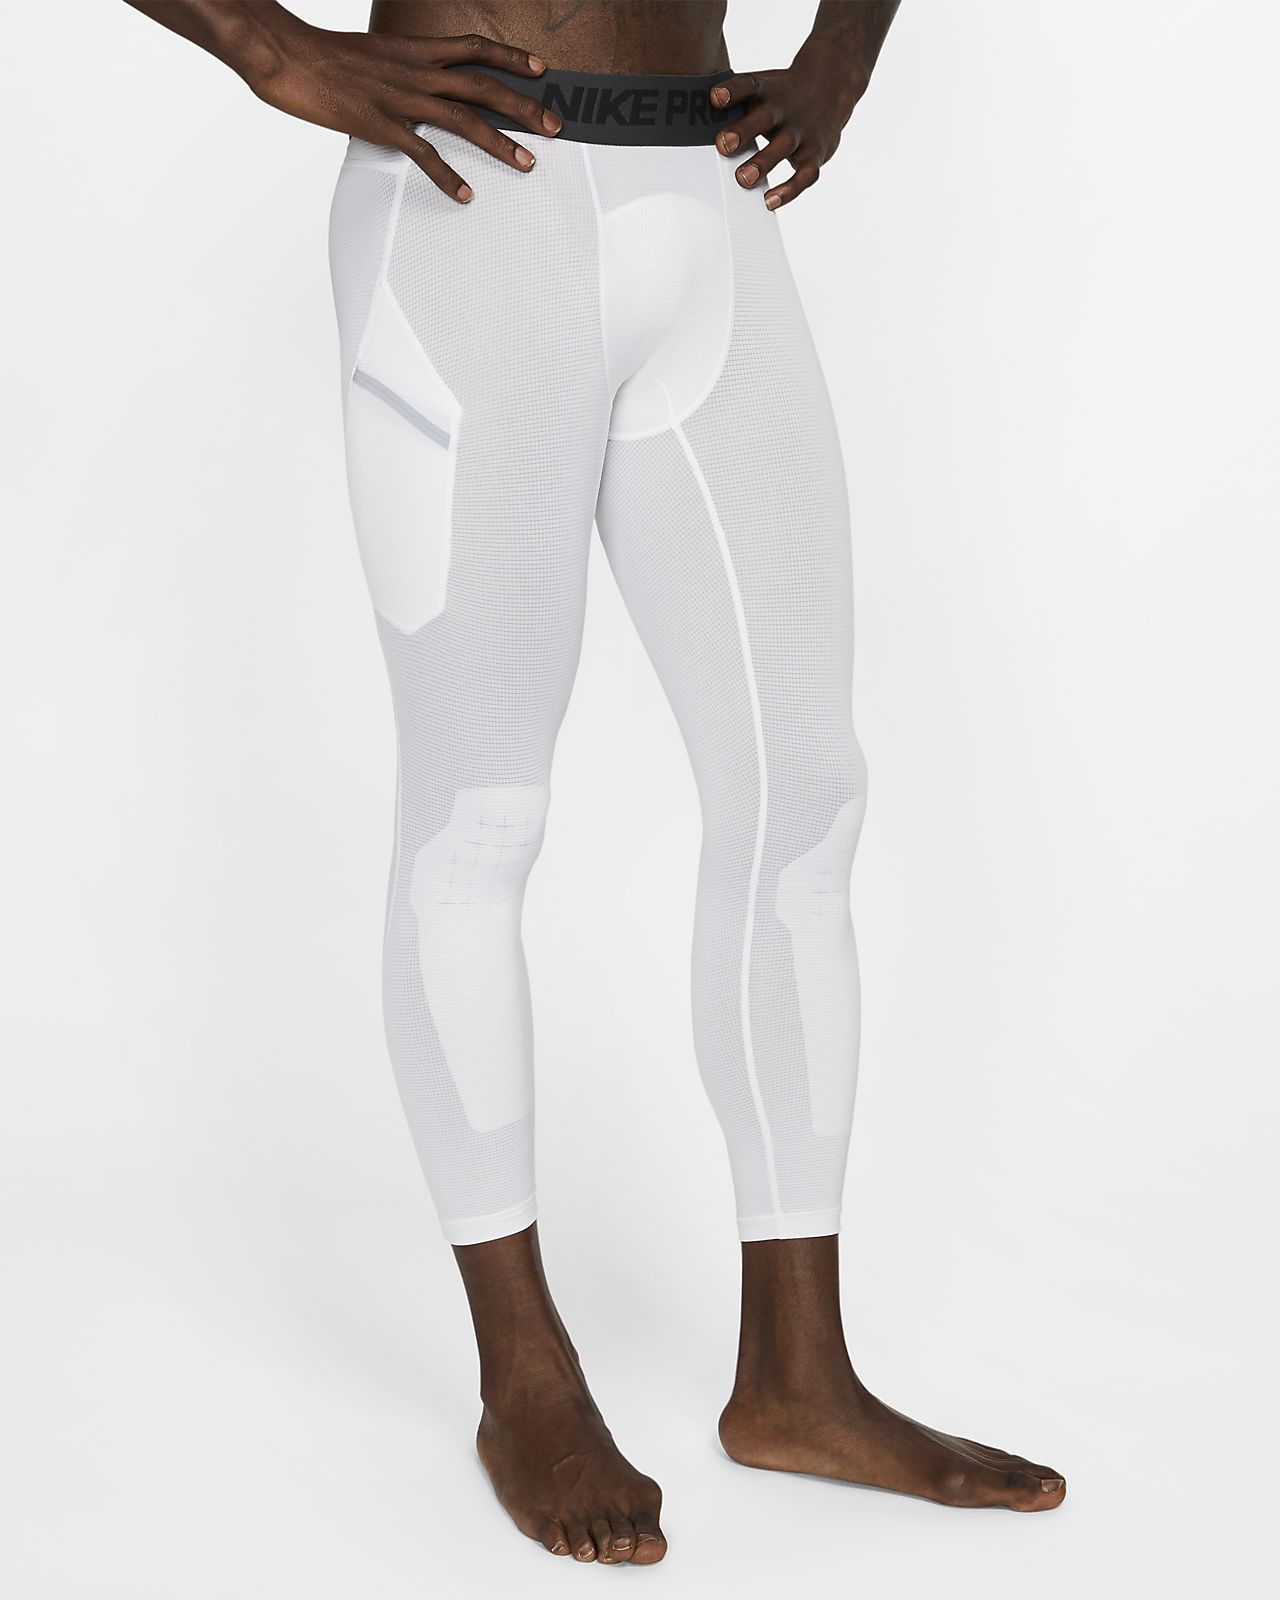 Nike Pro 3/4-Basketball-Tights für Herren